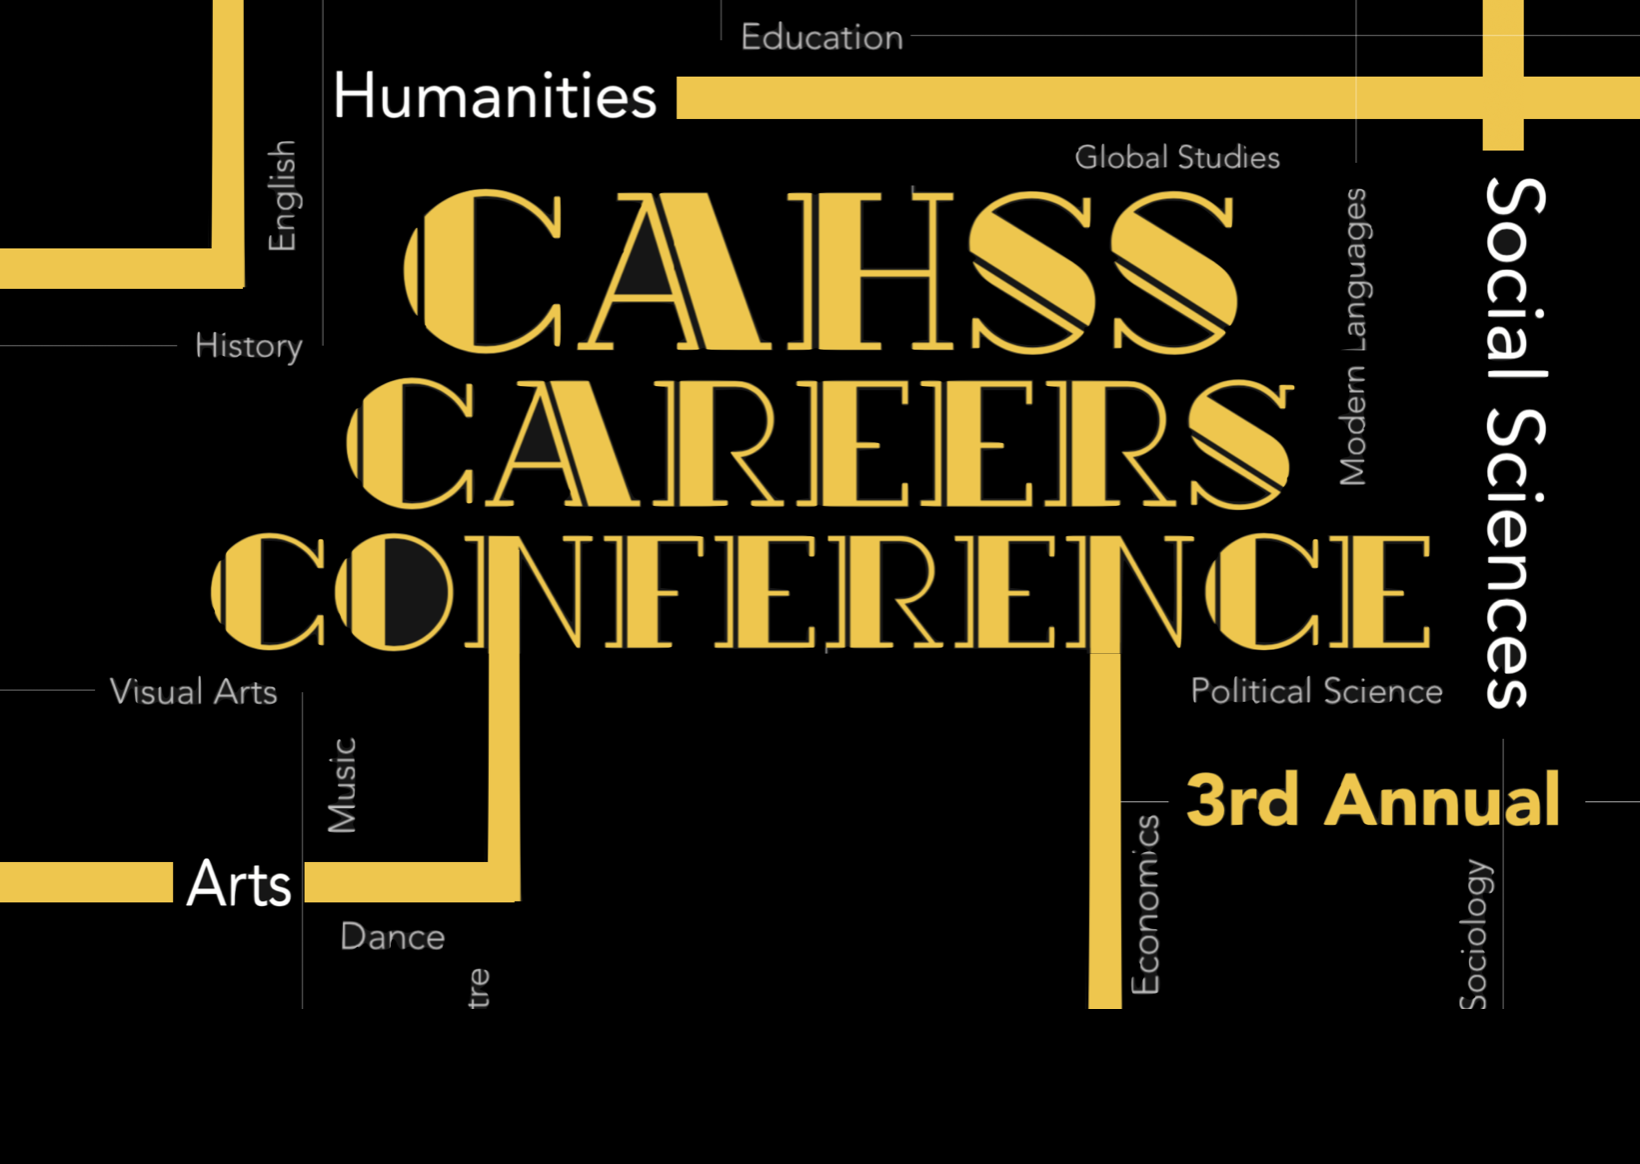 CAHSS Careers Conference